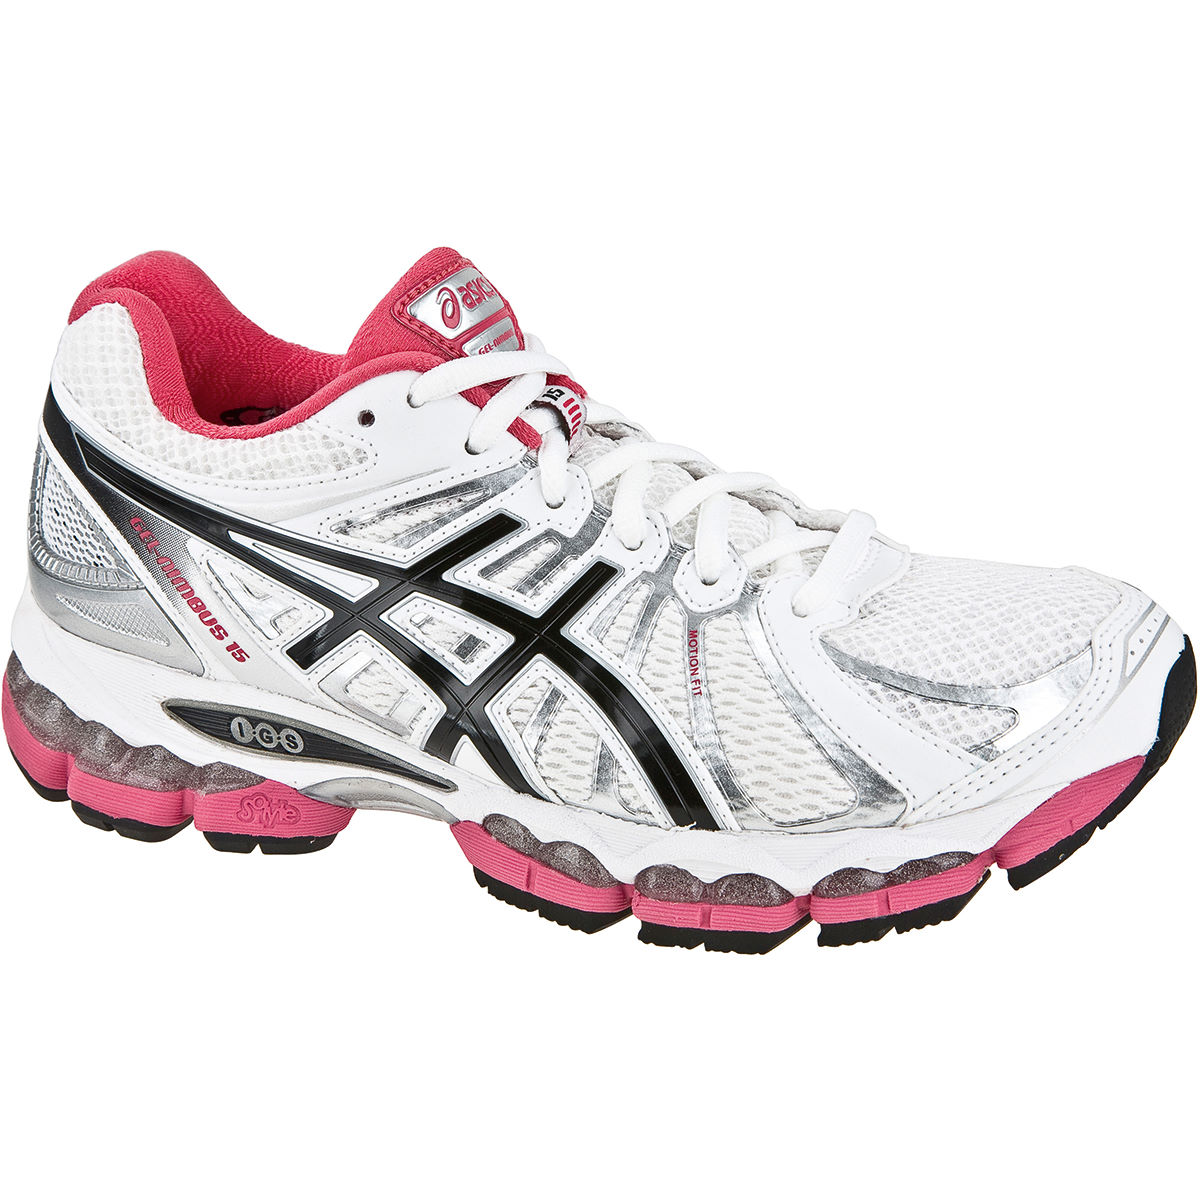 Zapatillas asics running 2014 zapatillas running asics gel - Asics Ladies Gel Nimbus 15 Shoes Aw13